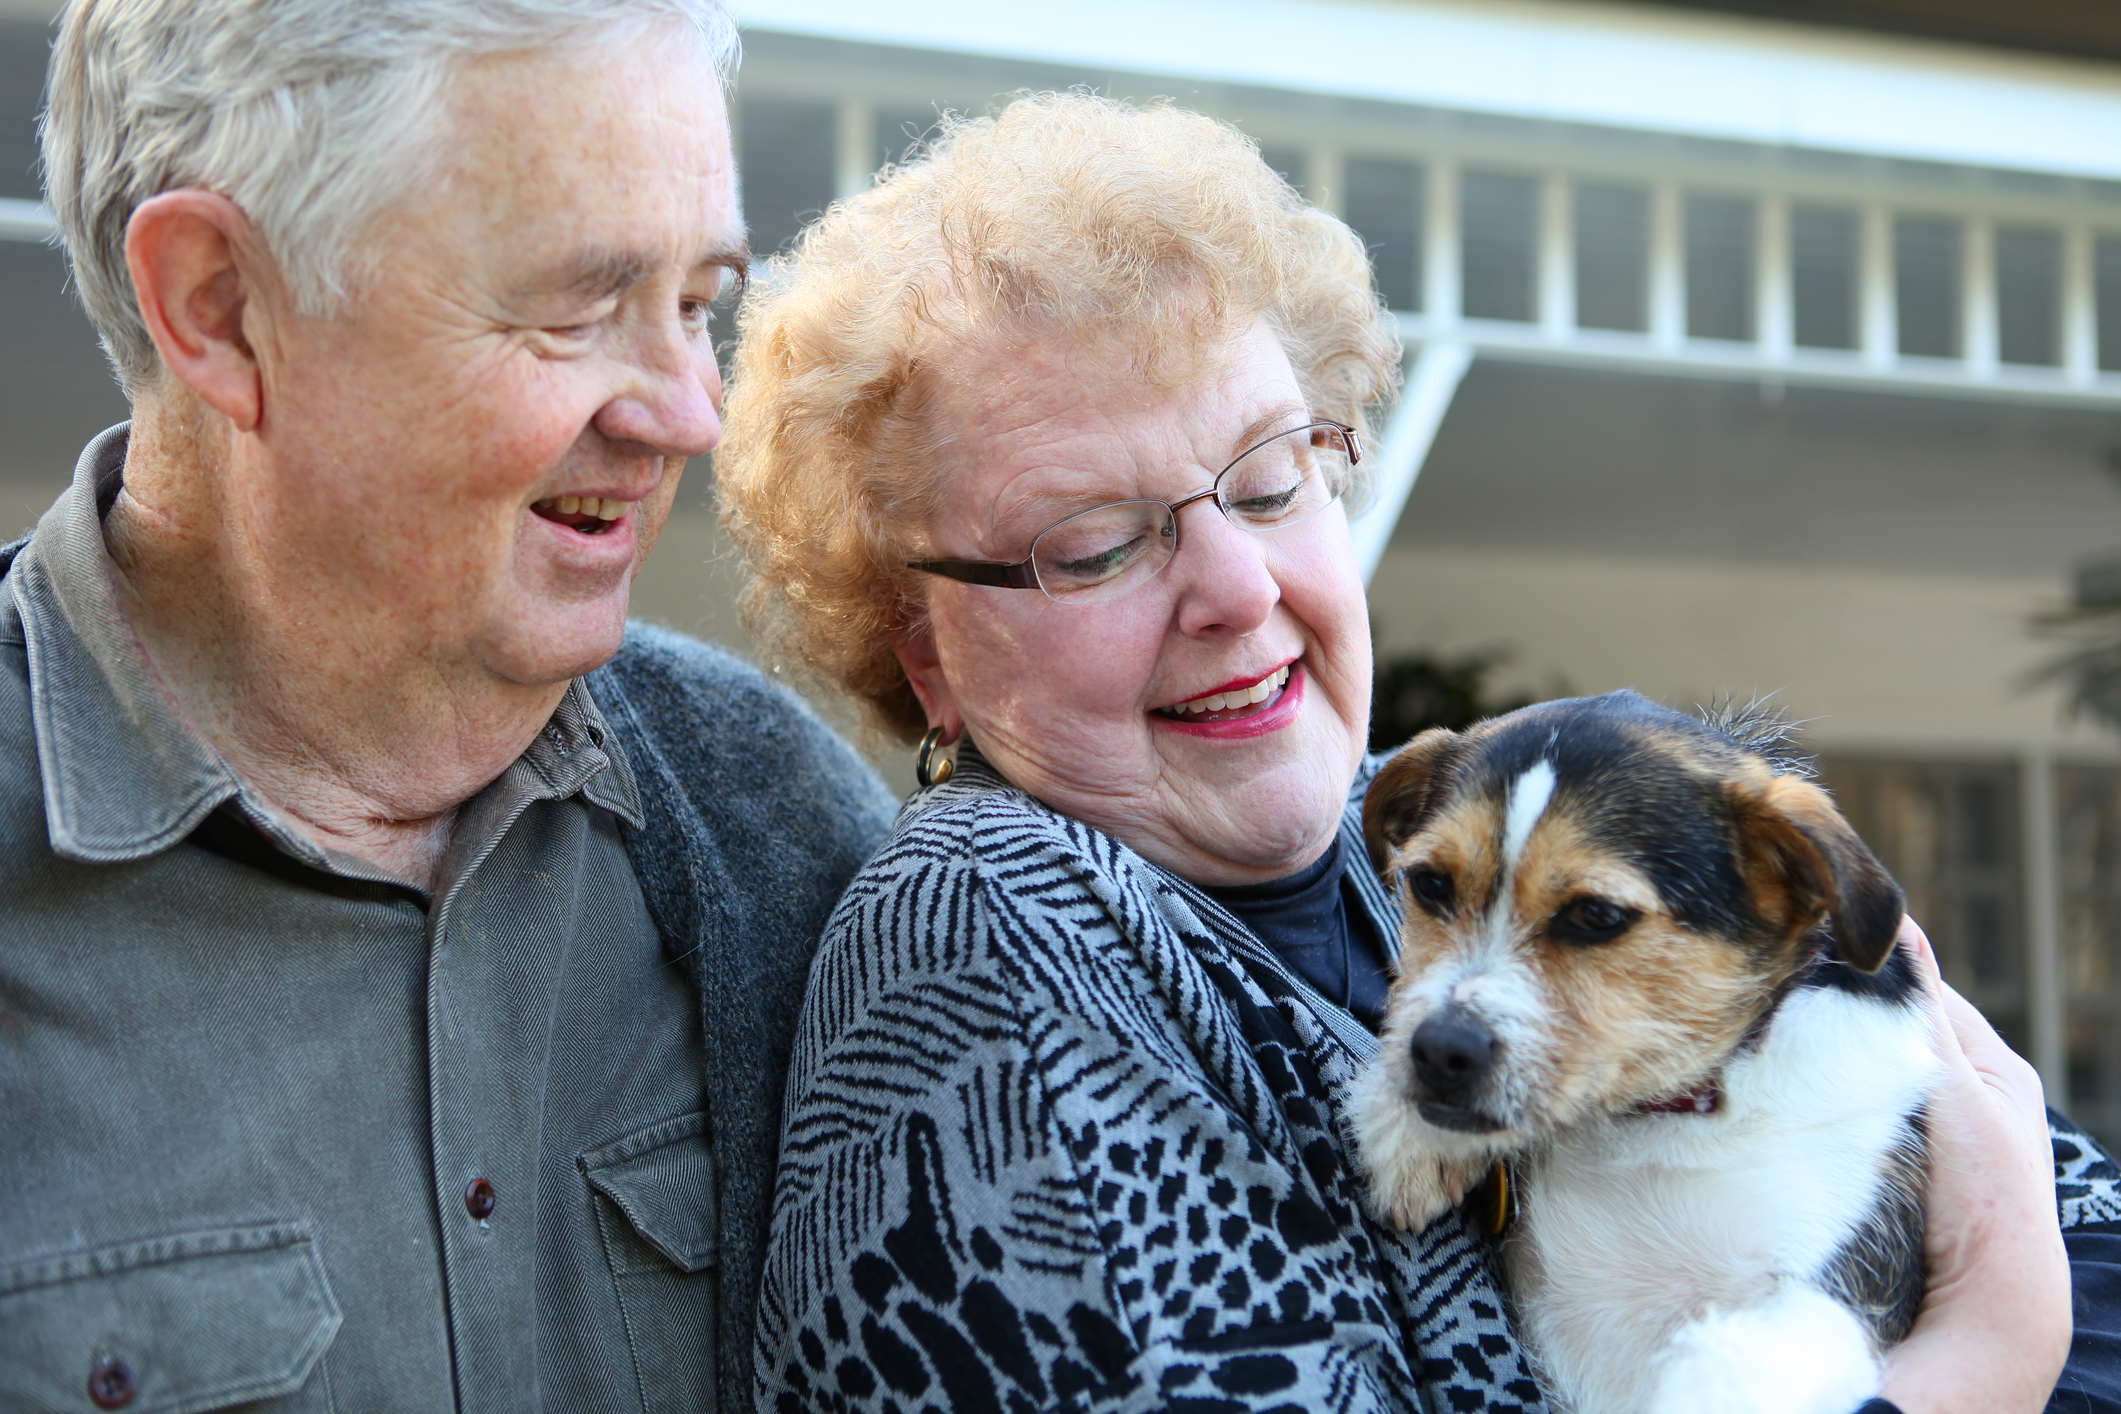 elderly-couple-with-dog-13305058